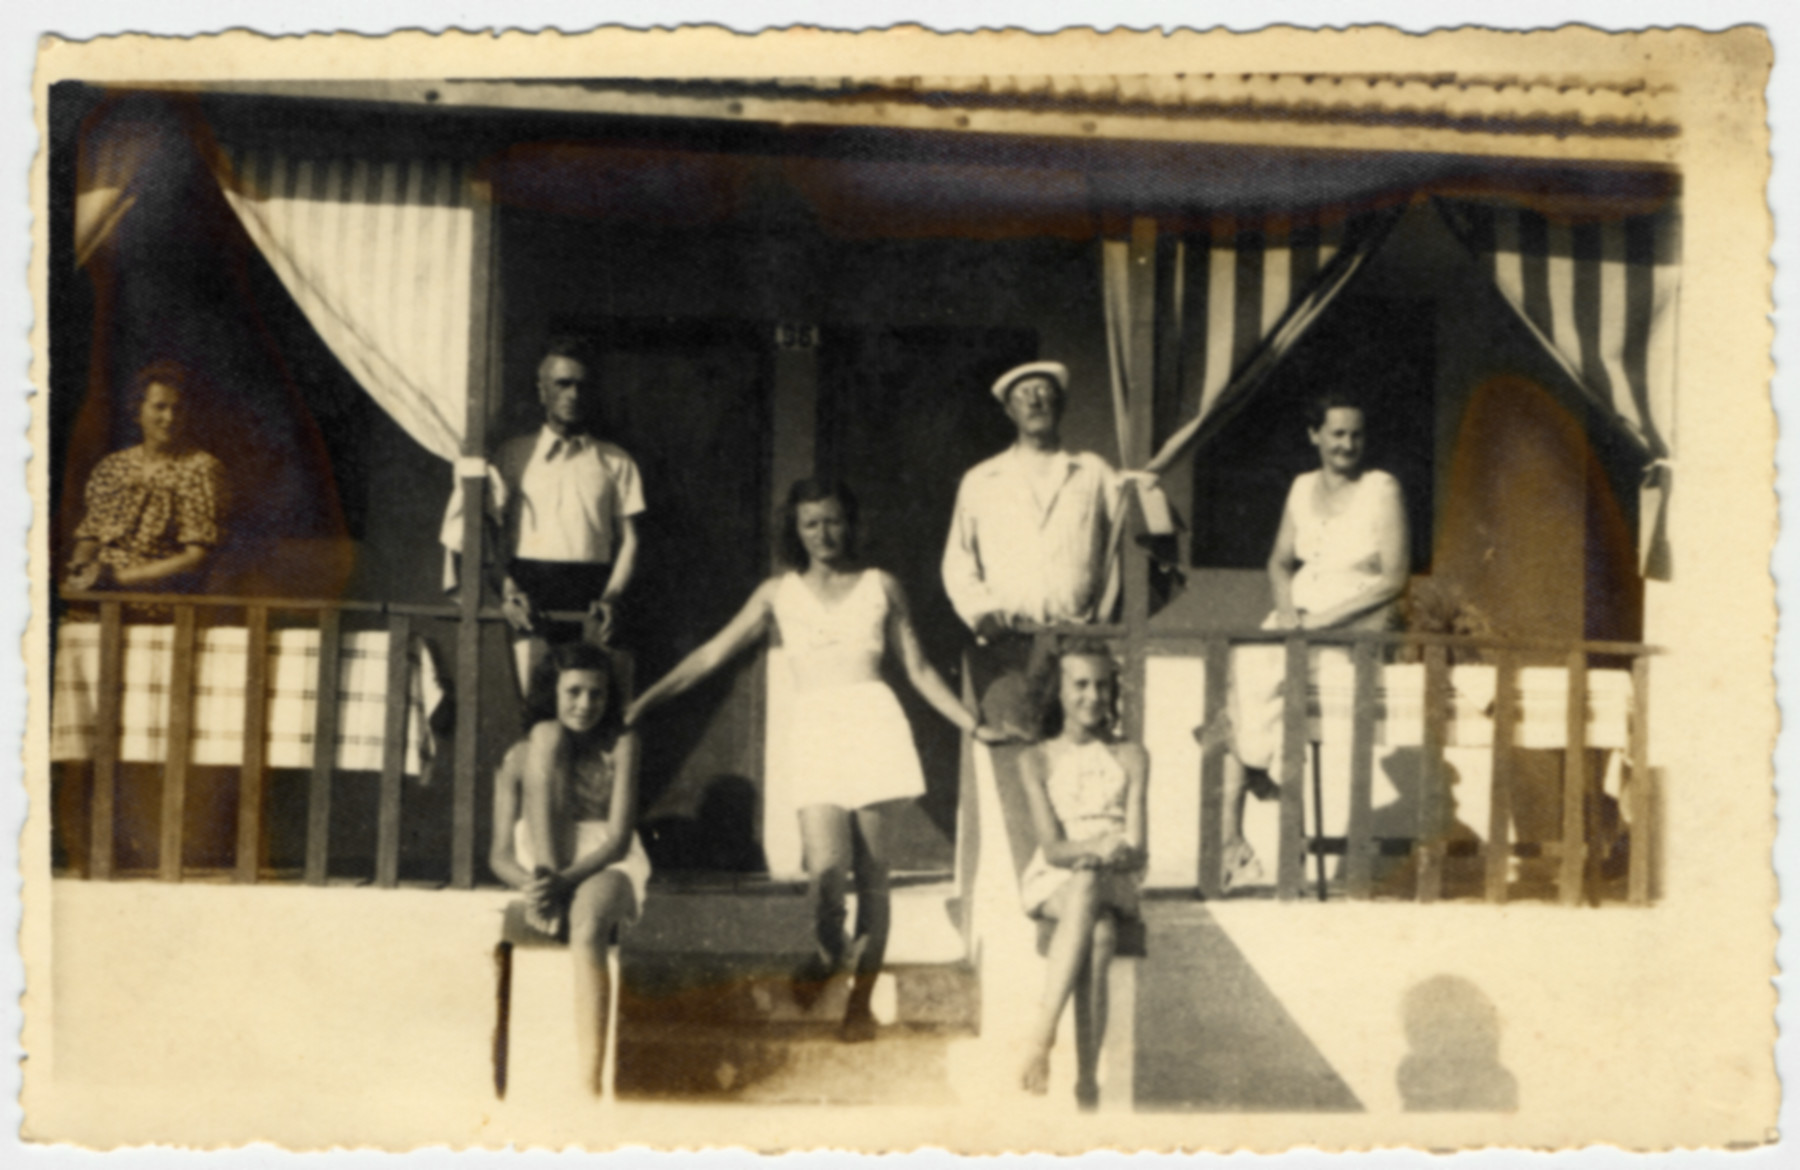 Picture of two Albanian-German families who assisted the Gerechter family.  Pictured on the left are the Permeti family; pictured on the right are the Wallach family.  They allowed the Gerechters to live at their home while they were away.  Mrs. Permeti was an Austrian nurse and her husband was an Albanian pediatrician.  Their daughter  Erika pictured seated on the left was a close friend of Johanna Gerechter.  She went on to marry the son of Toptani, Atif & Ganimet who were later honored by Yad Vashem for saving 17 people.    Pictured on the right are the Wallach family.